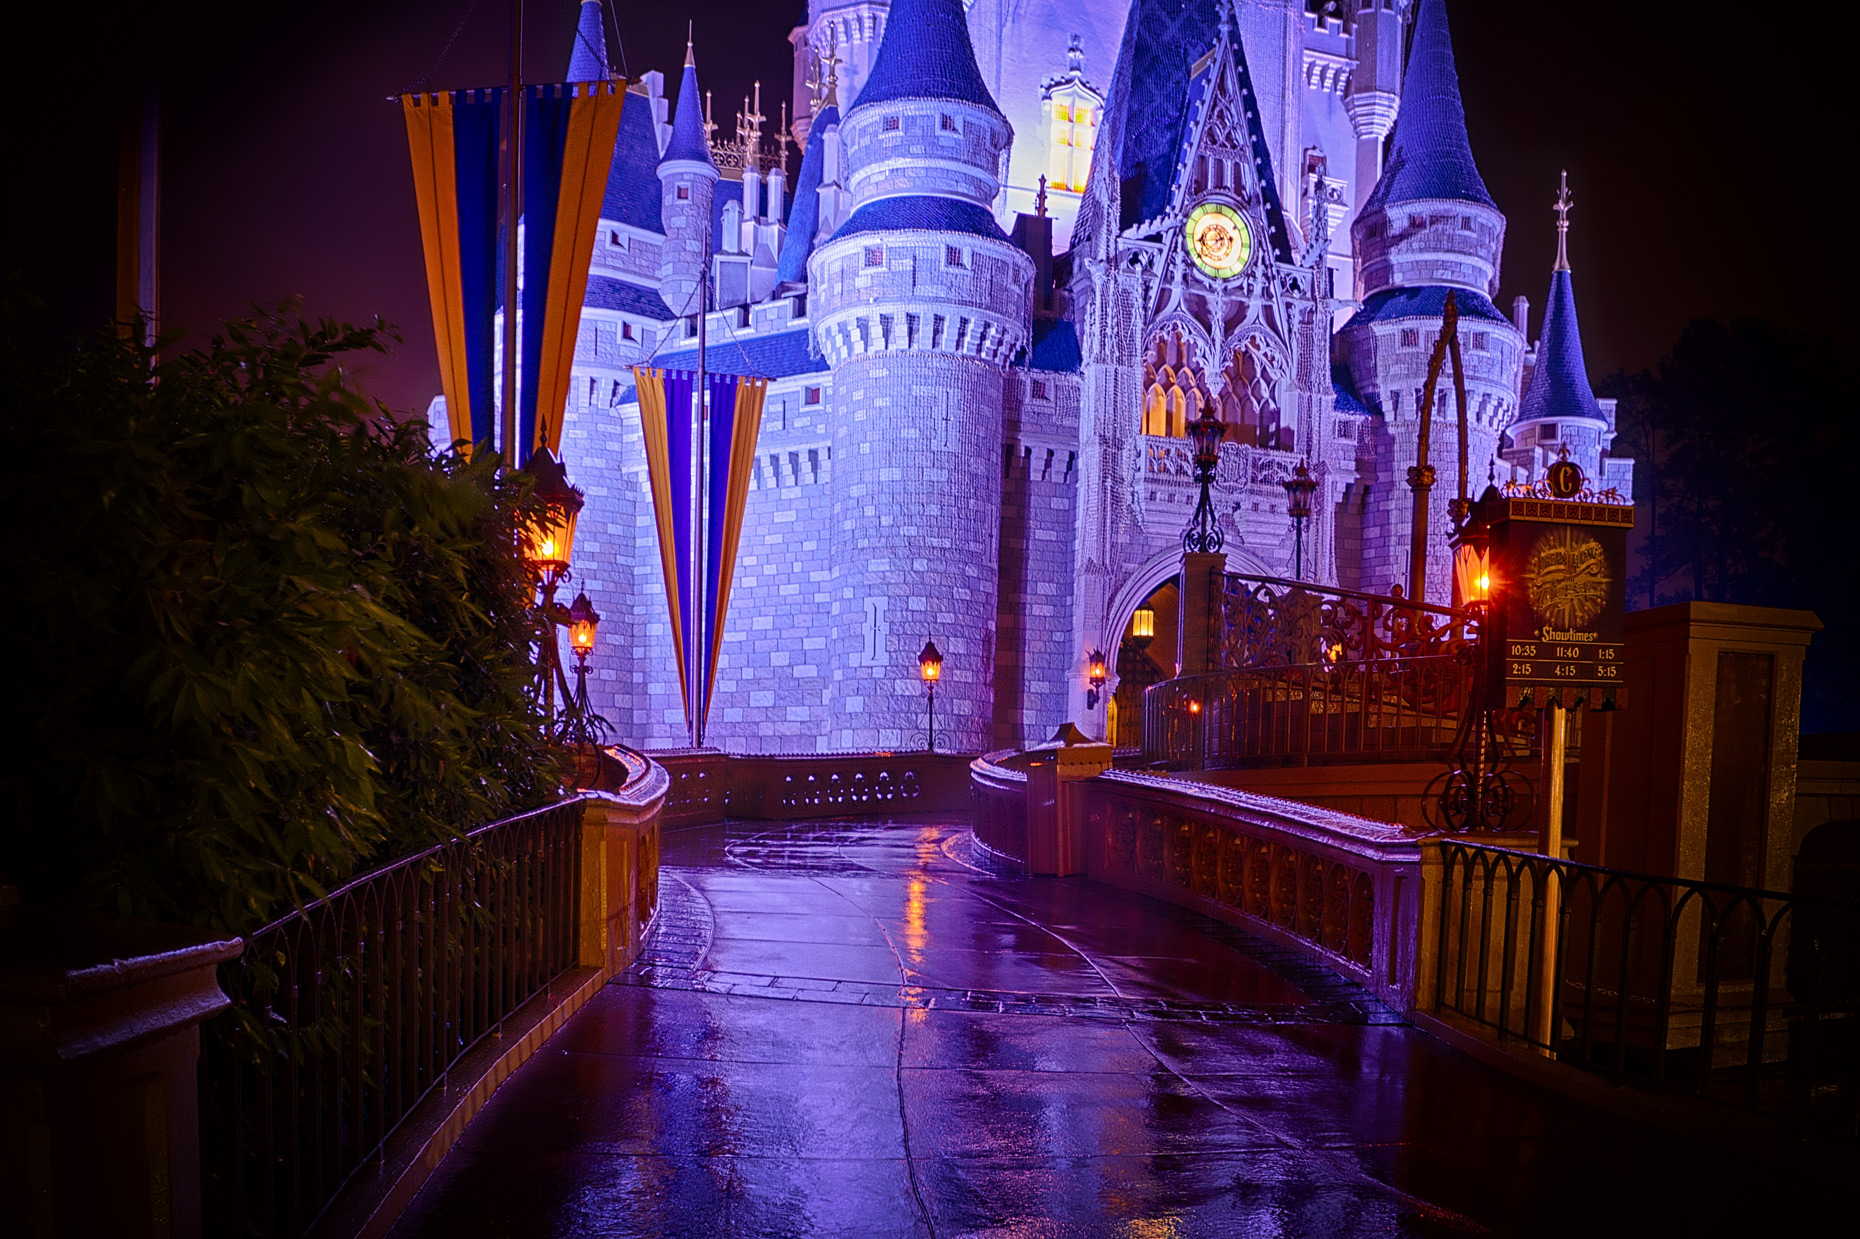 Disney Photography, Disney World Photography, Disneyland Photography, Disney Photos, Disney Pictures, Walt Disney World, The Magic Kingdom, Walt Disney, Mickey Mouse, Orlando, Florida, Theme Park, Star Wars, Star Wars Weekends, Epcot, Monorail, Illuminati